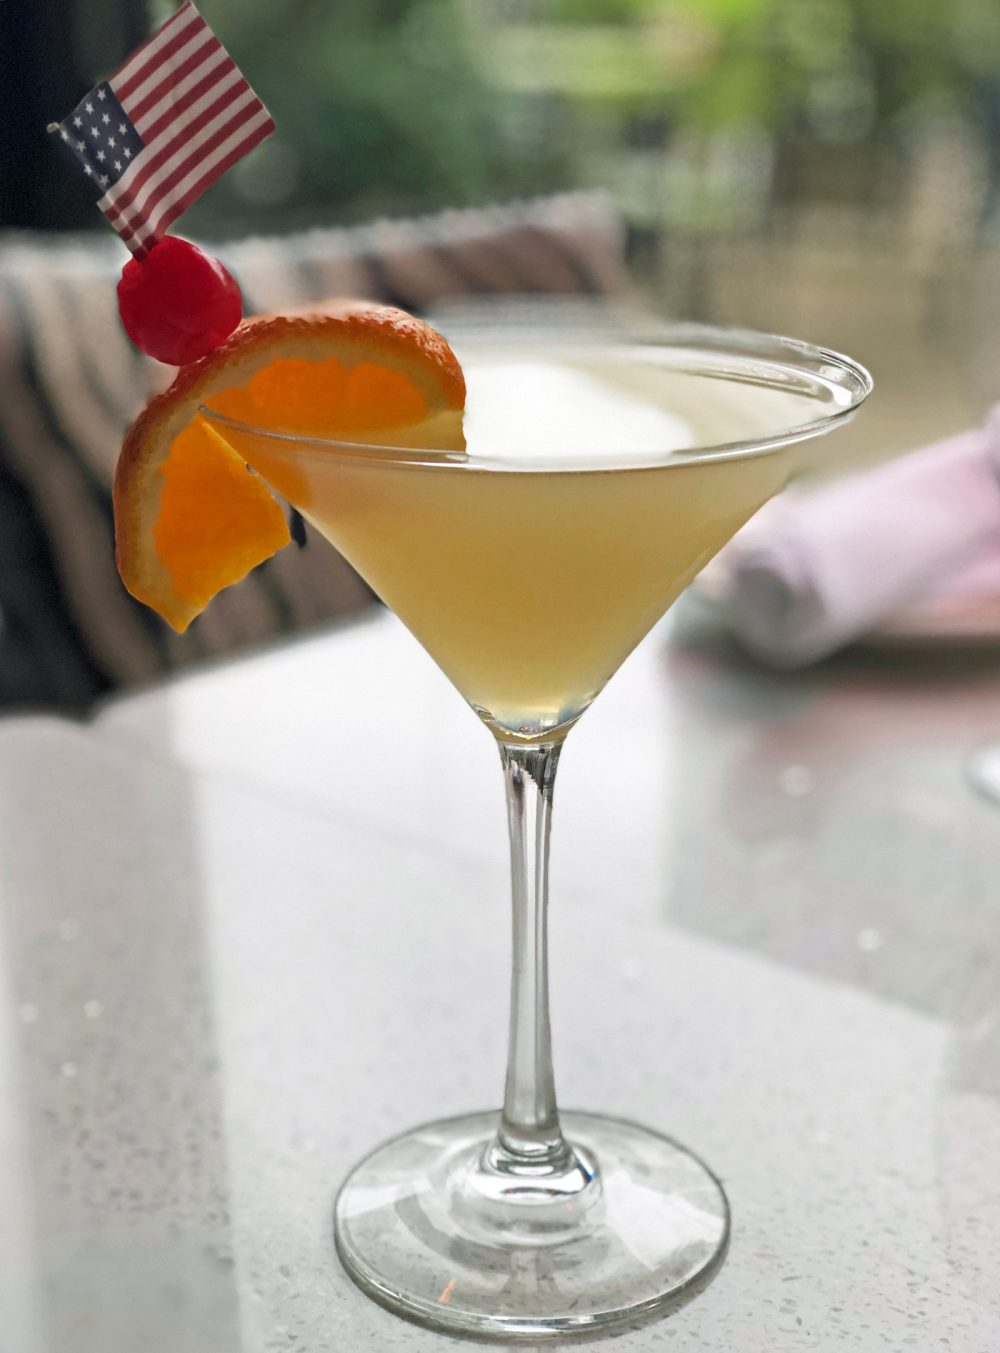 In Peach Me Martini at Kit Kat Lounge & Supper Club